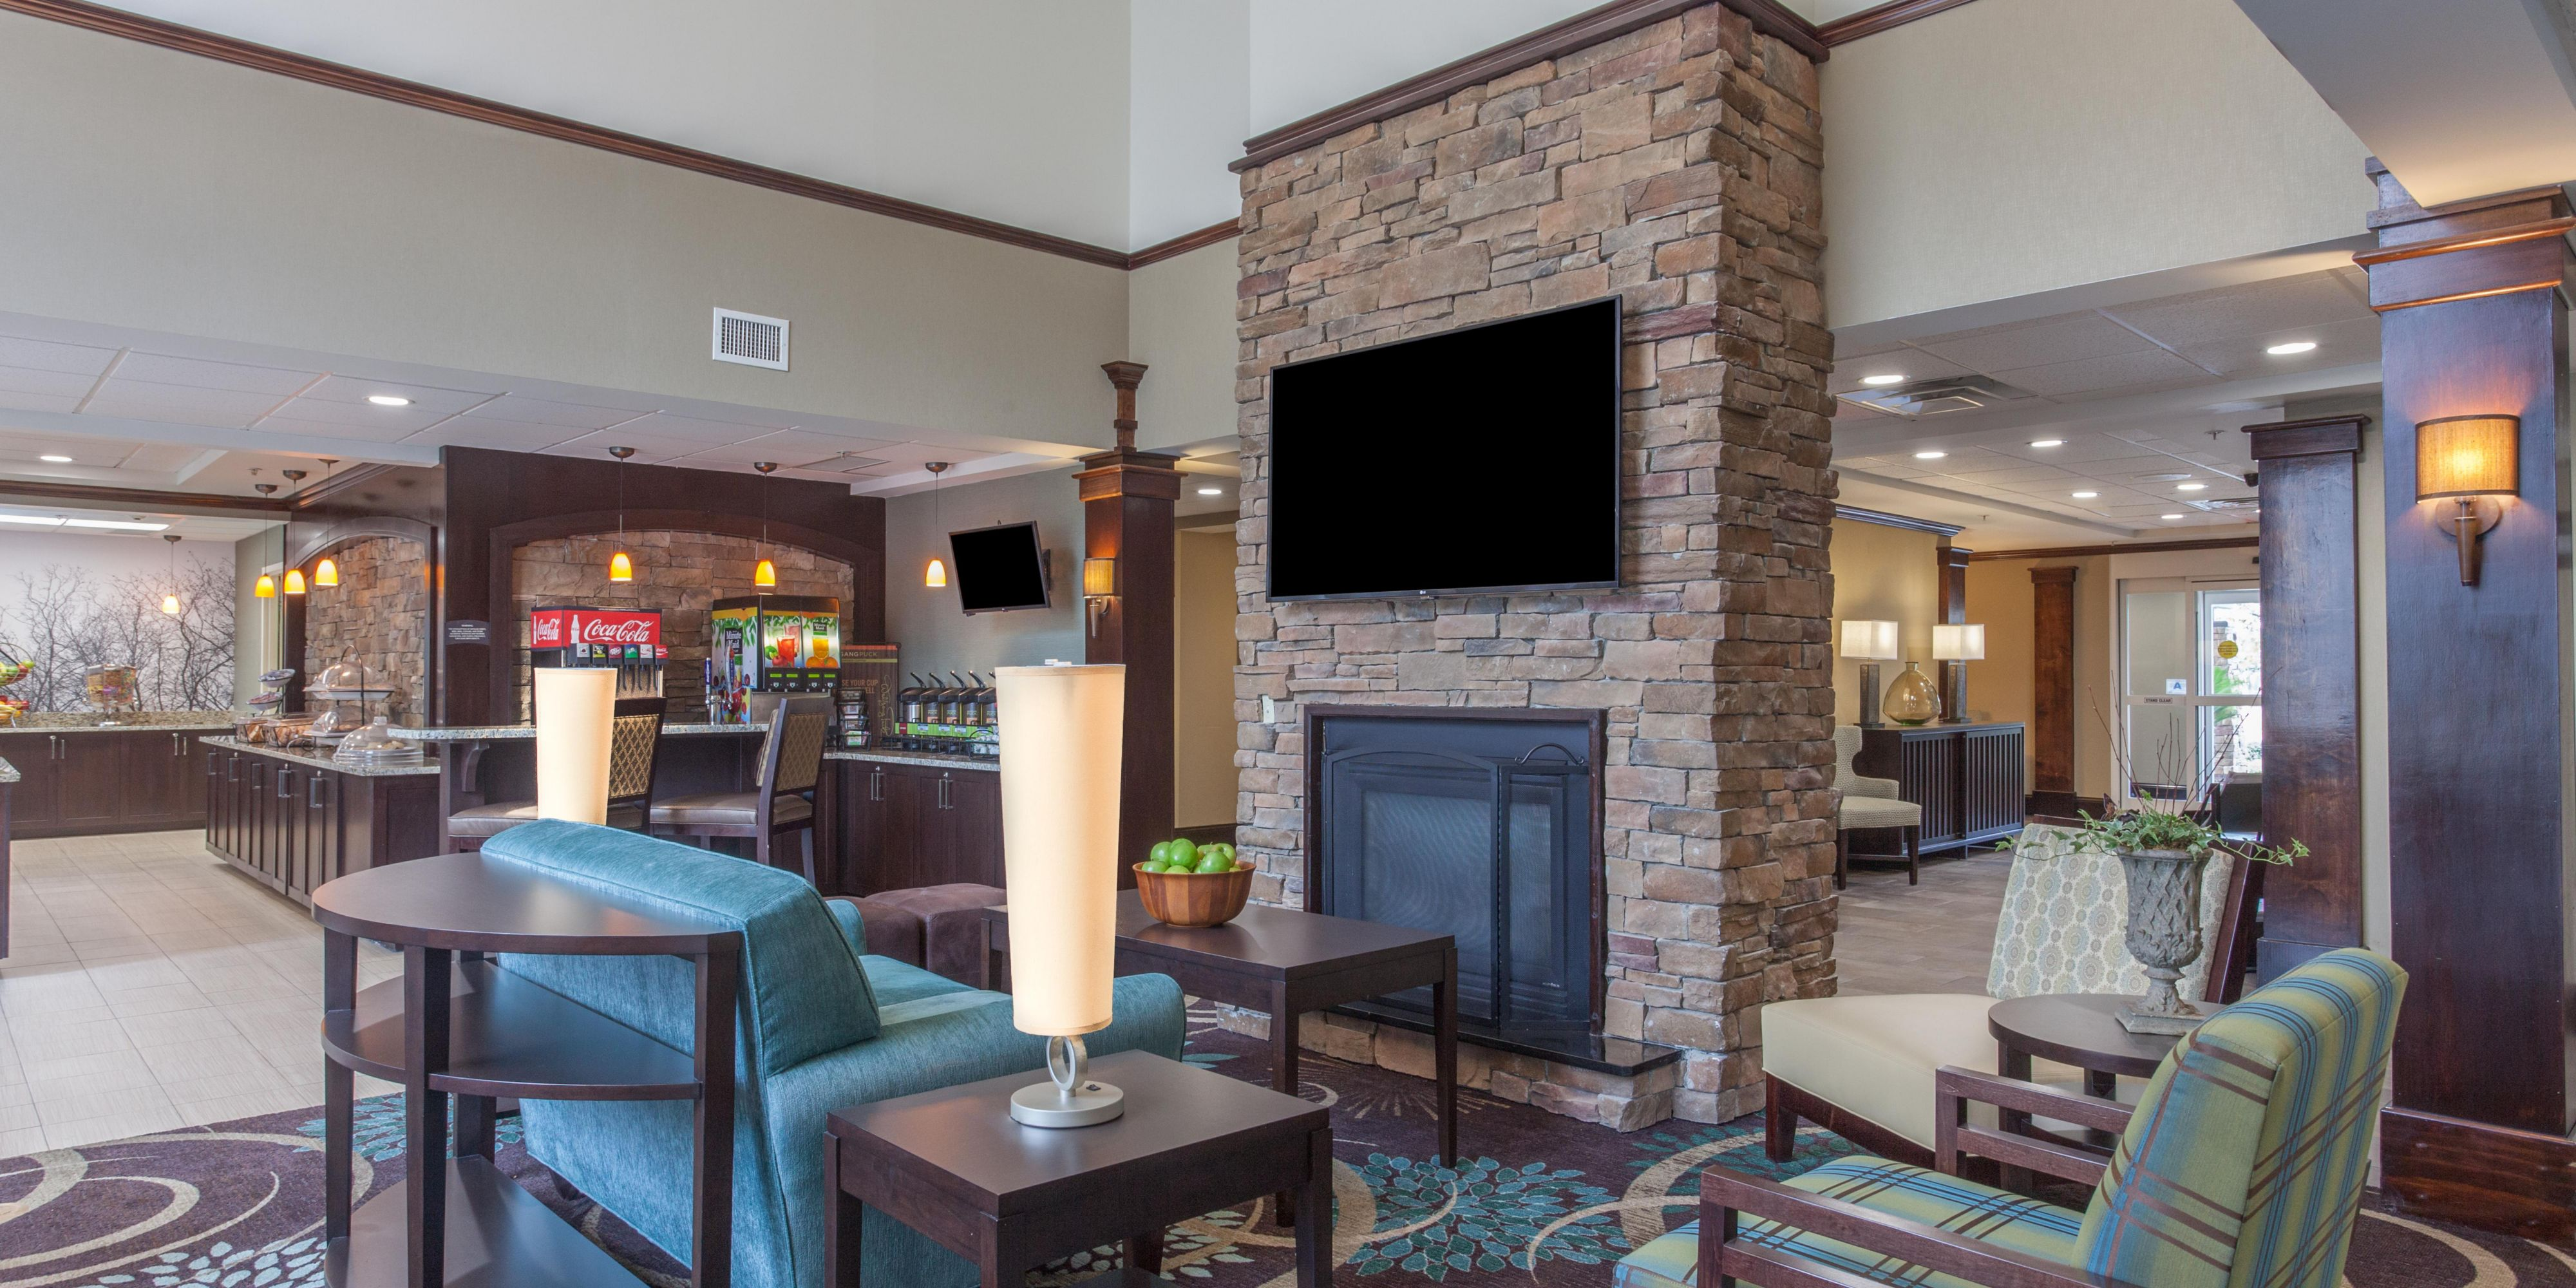 Lovely Greenville Hotels: Staybridge Suites Greenville I 85 Woodruff Road    Extended Stay Hotel In Greenville, South Carolina